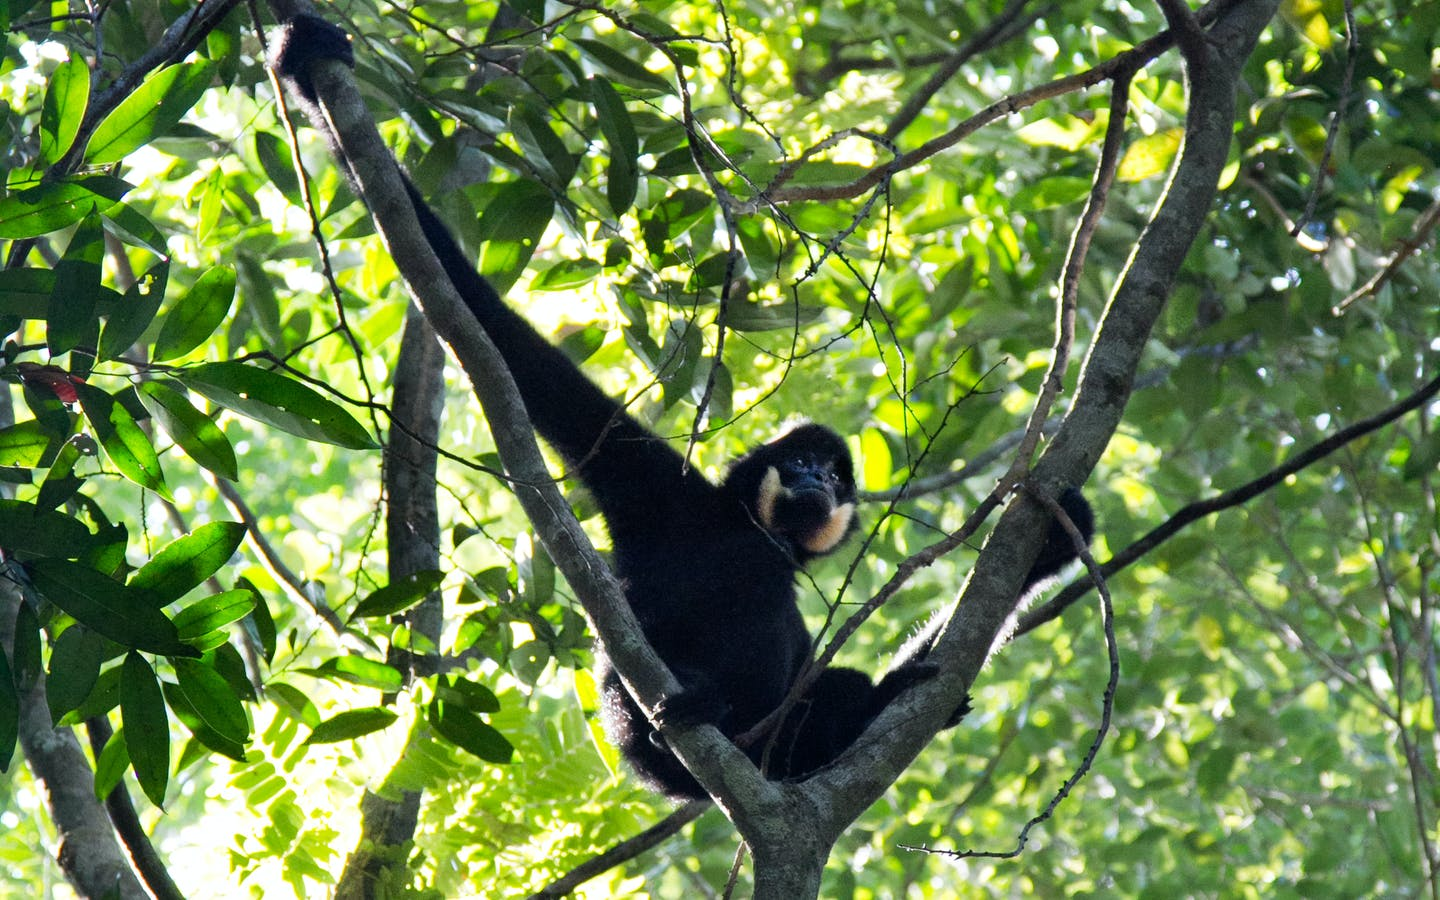 Northern buff cheeked gibbon, Veun Sai Conservation Area, Cambodia